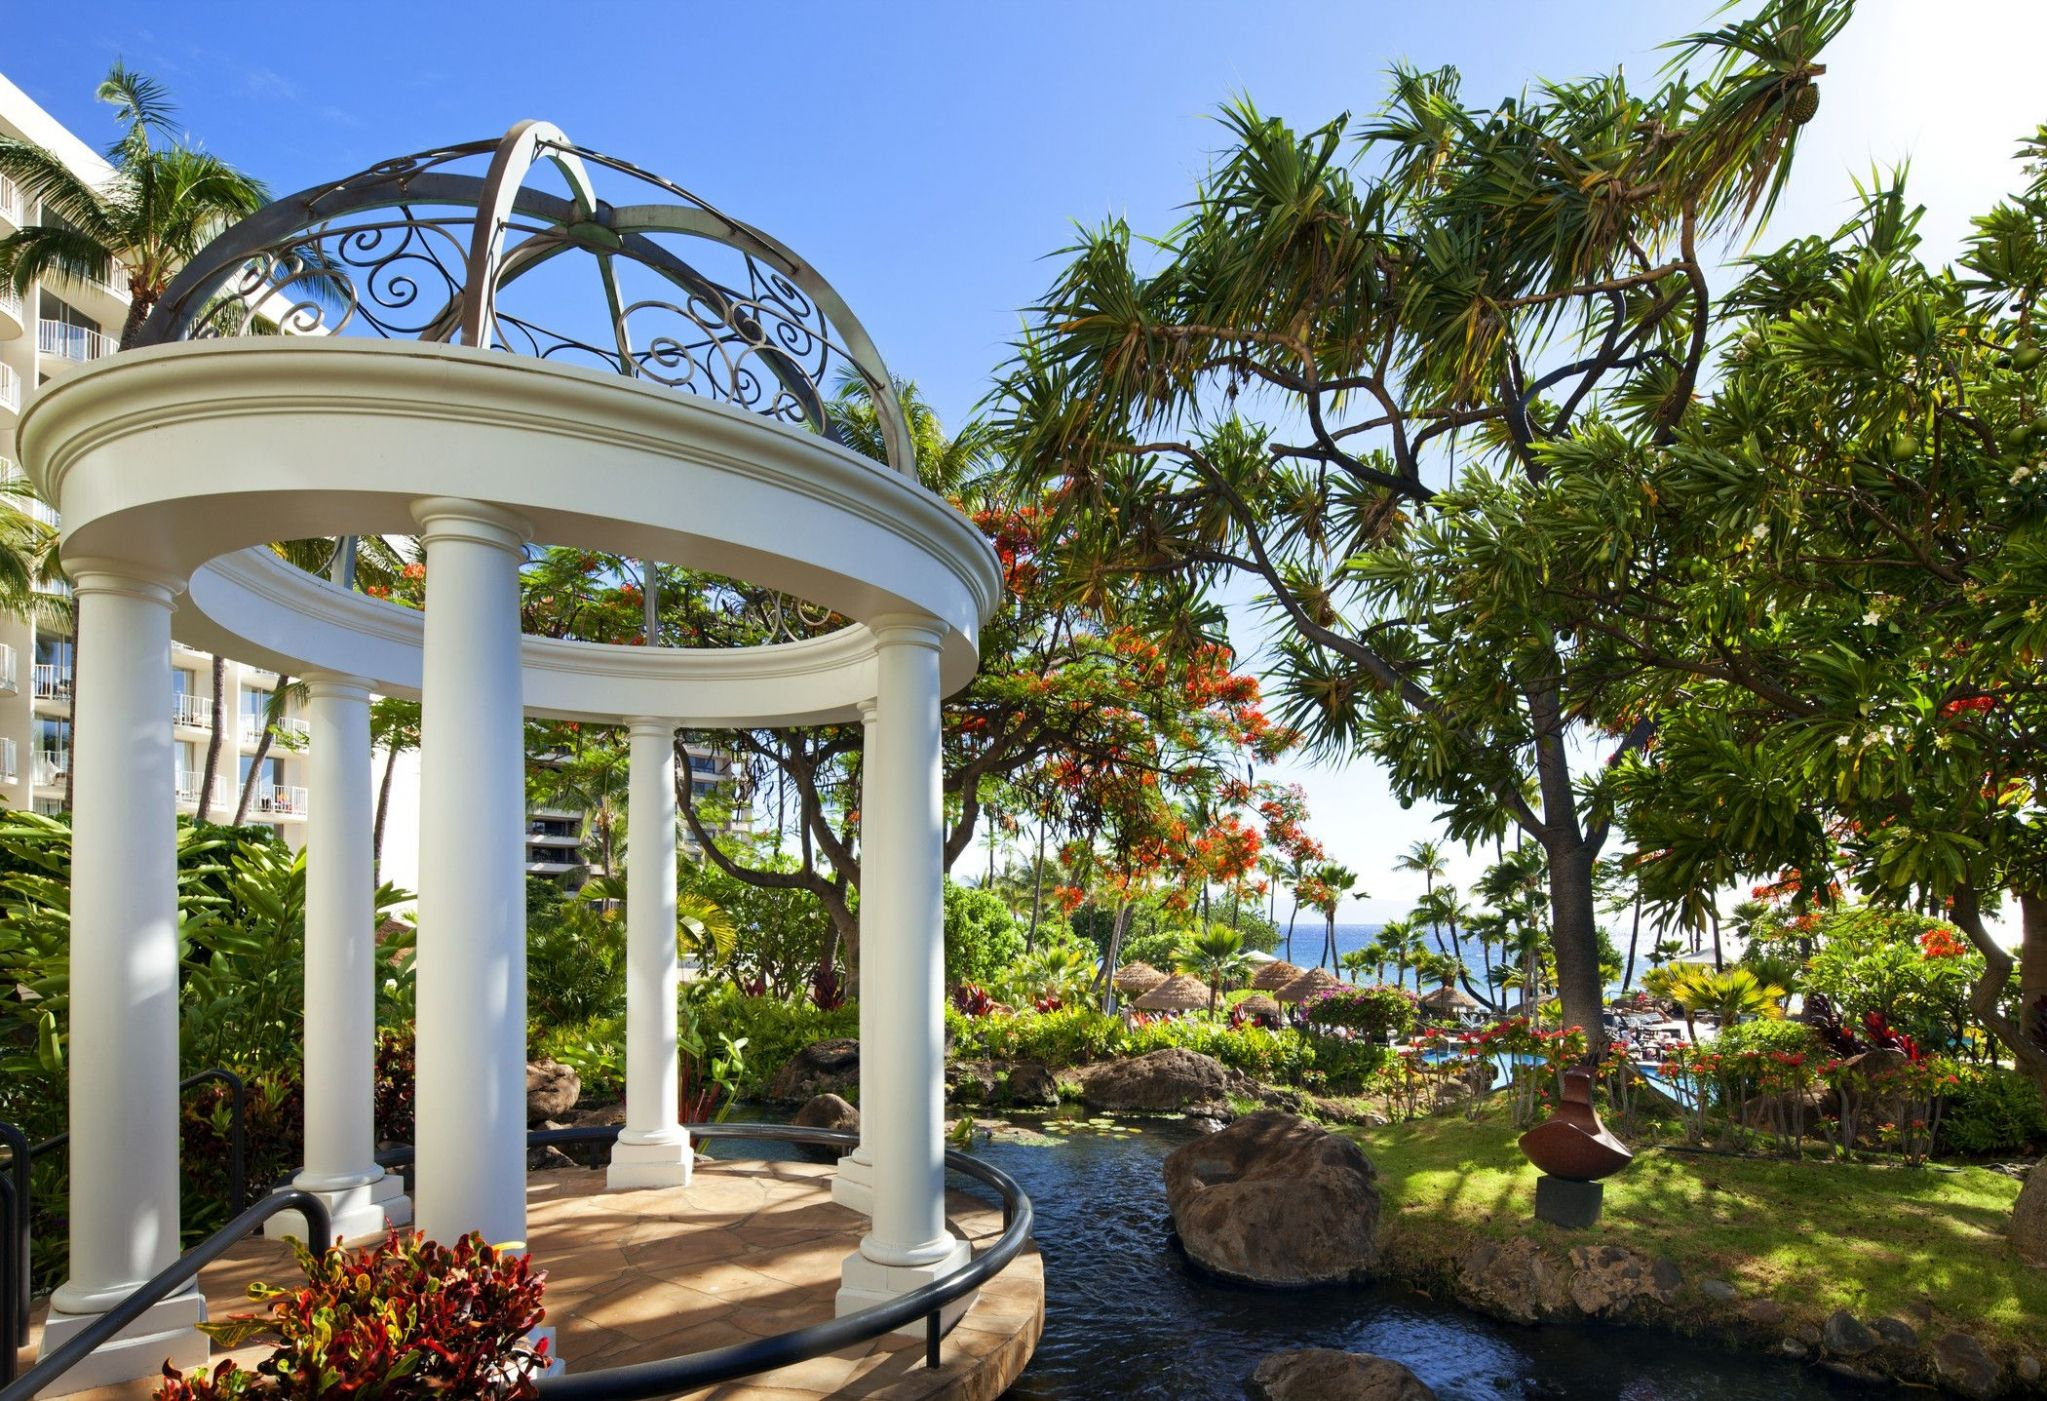 westin maui wedding venue hale aloha gazebo - The Westin Maui Resort & Spa